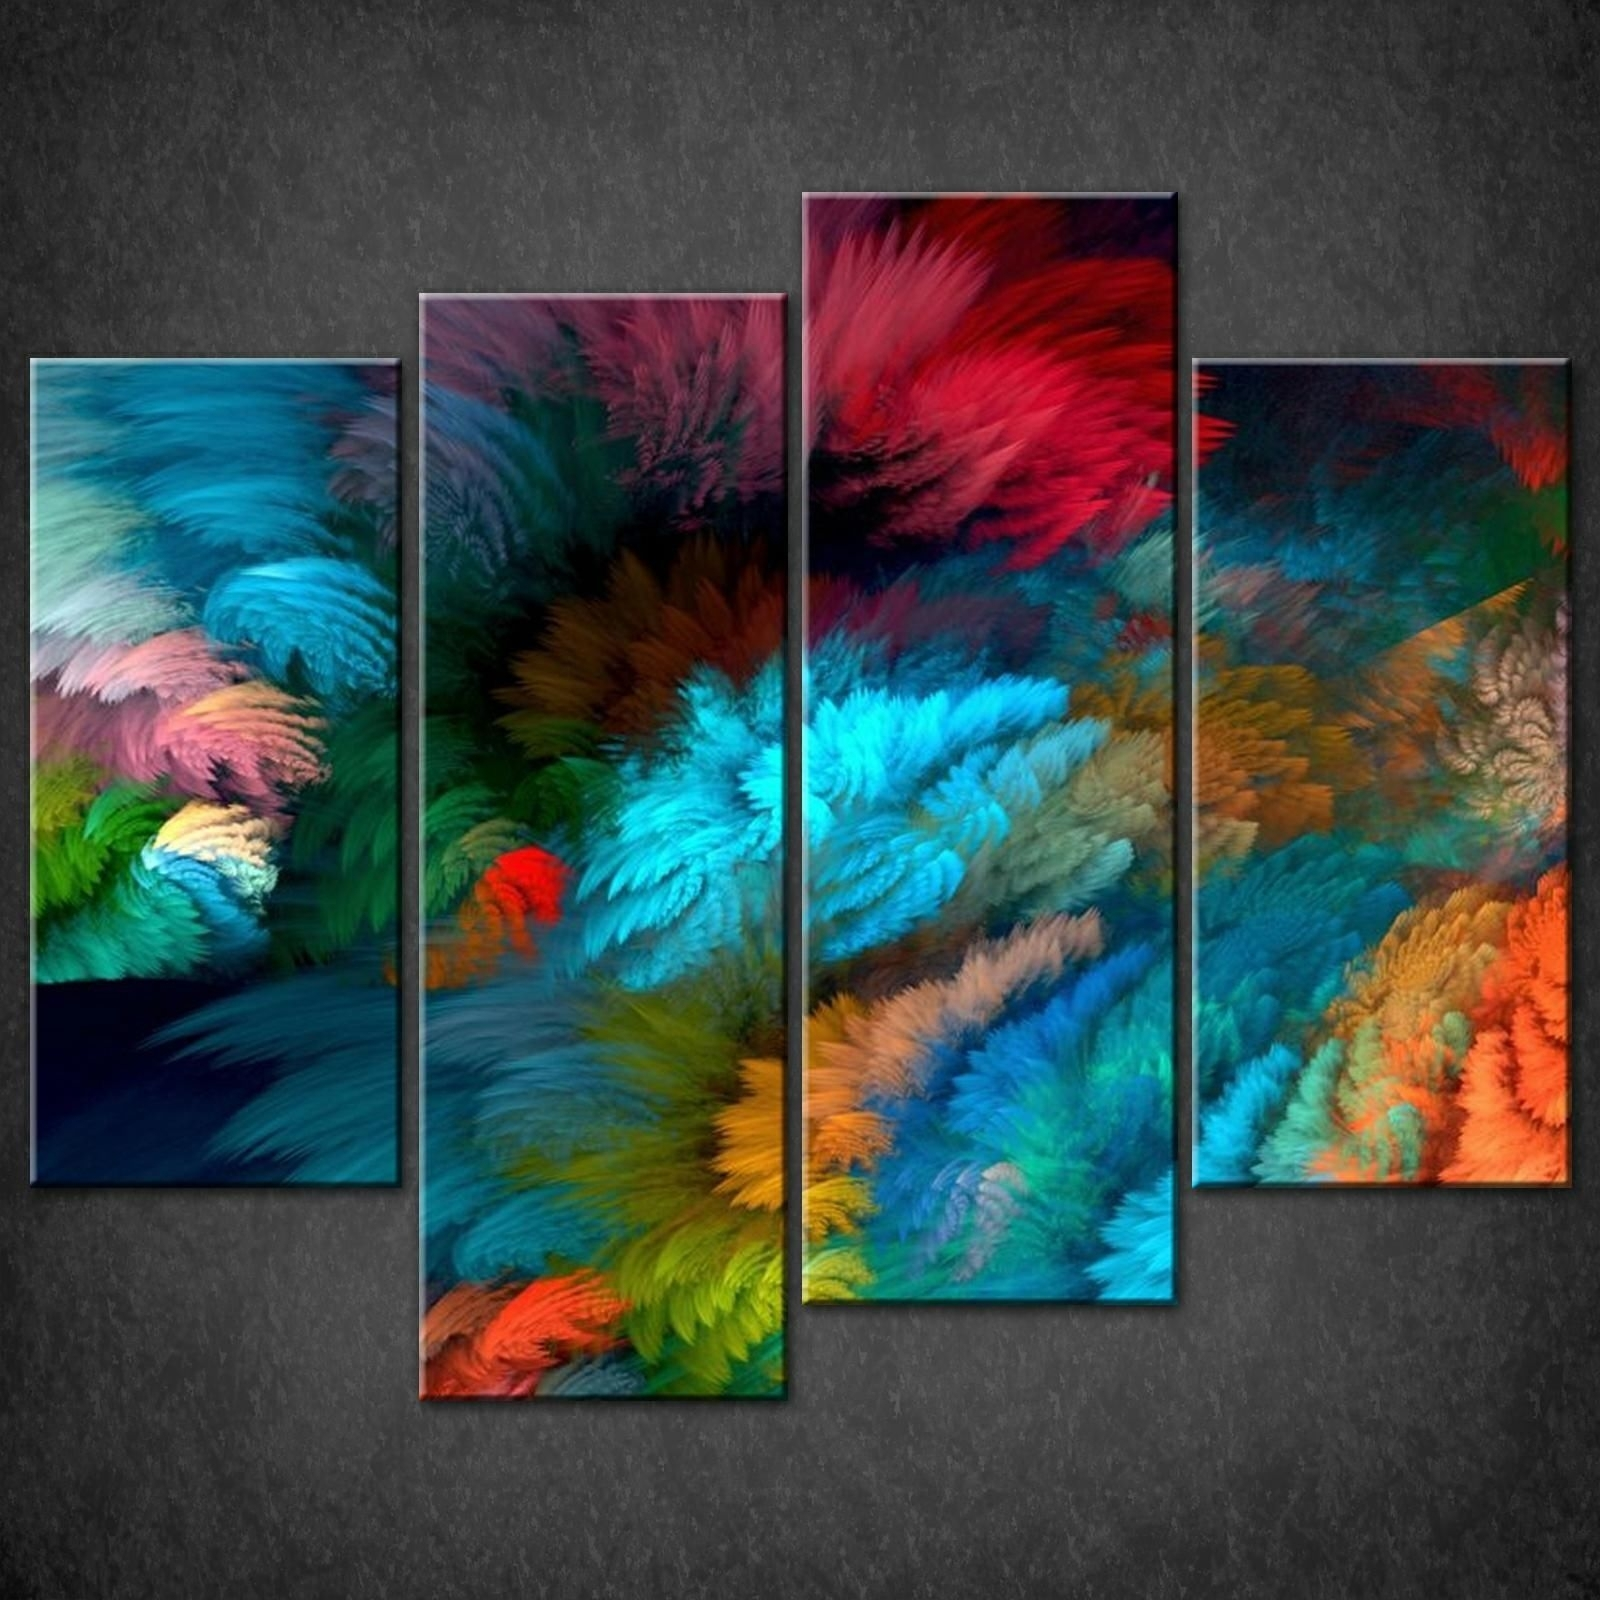 10 Best Ideas Of Large Canvas Painting Wall Art With Regard To Current Acrylic Abstract Wall Art (View 1 of 20)